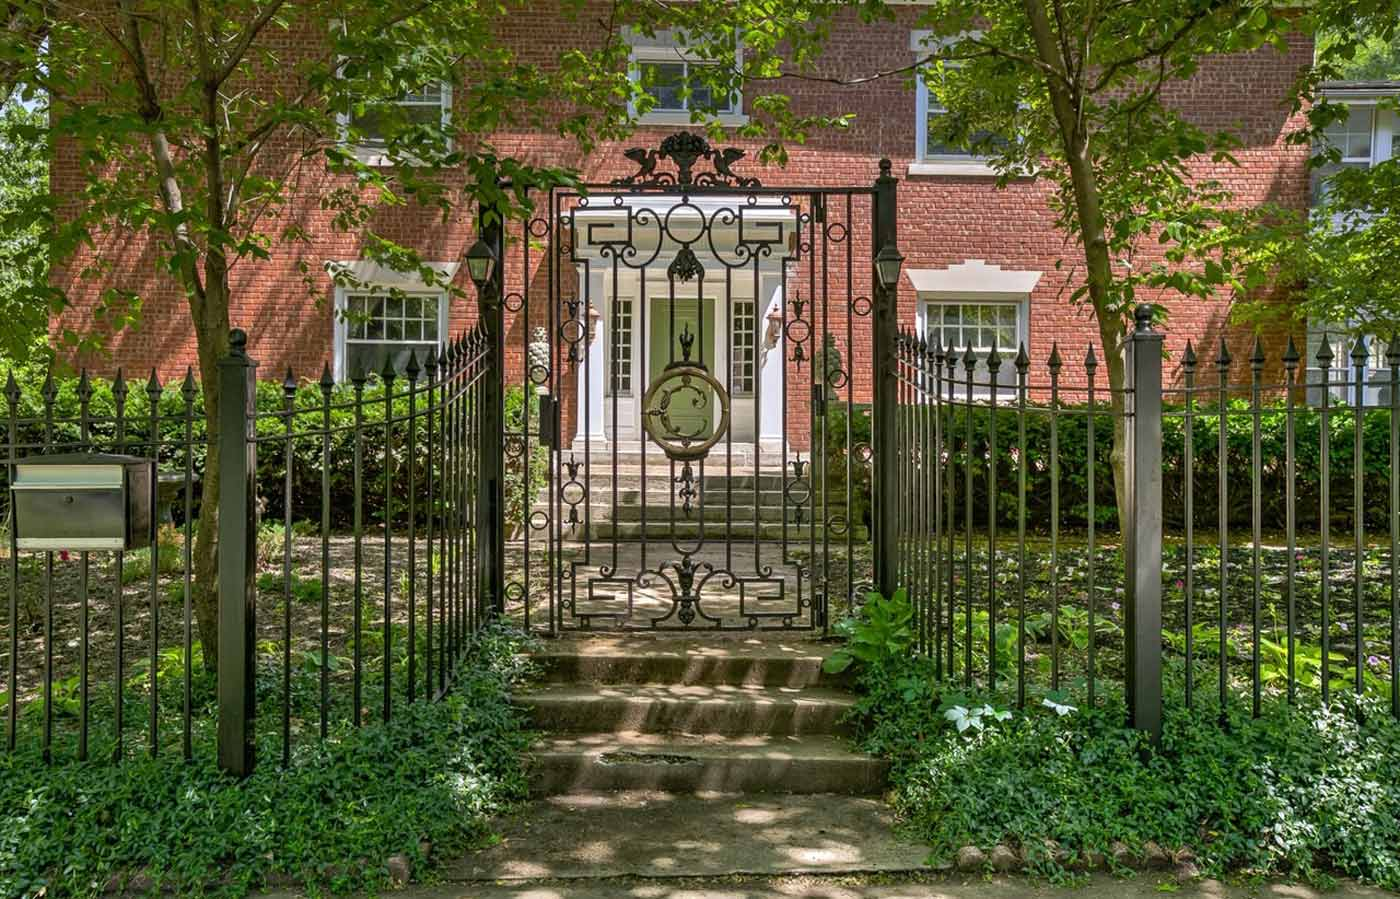 Photo of the 2019/20 Symphony Designers' Showhouse in Kansas City. A brick home with wrought iron fence